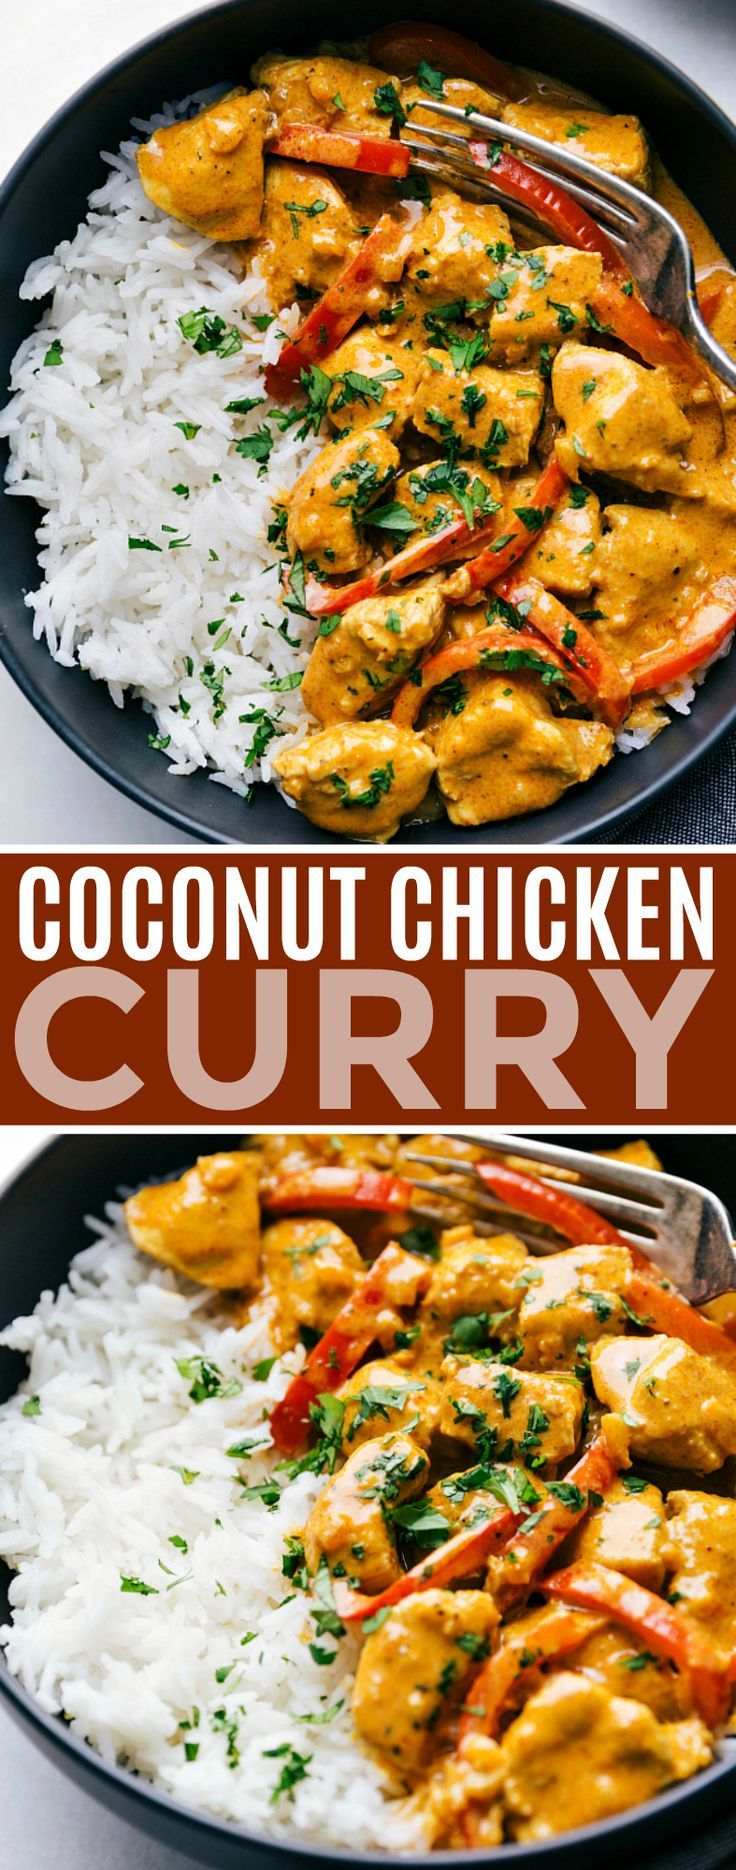 Coconut Chicken Curry -   13 healthy recipes Chicken curry ideas